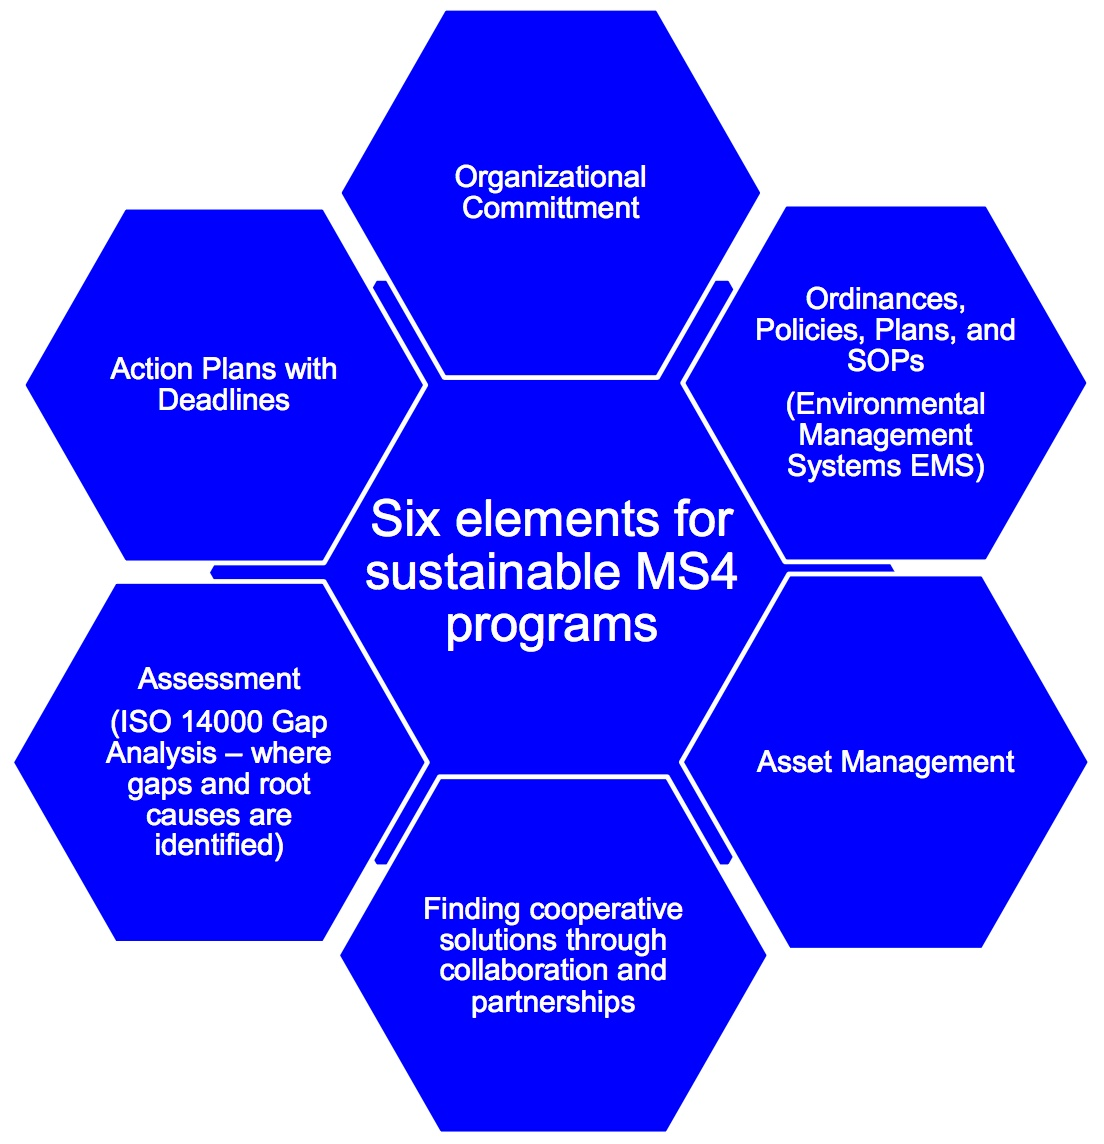 Six elements for sustainable MS4 programs